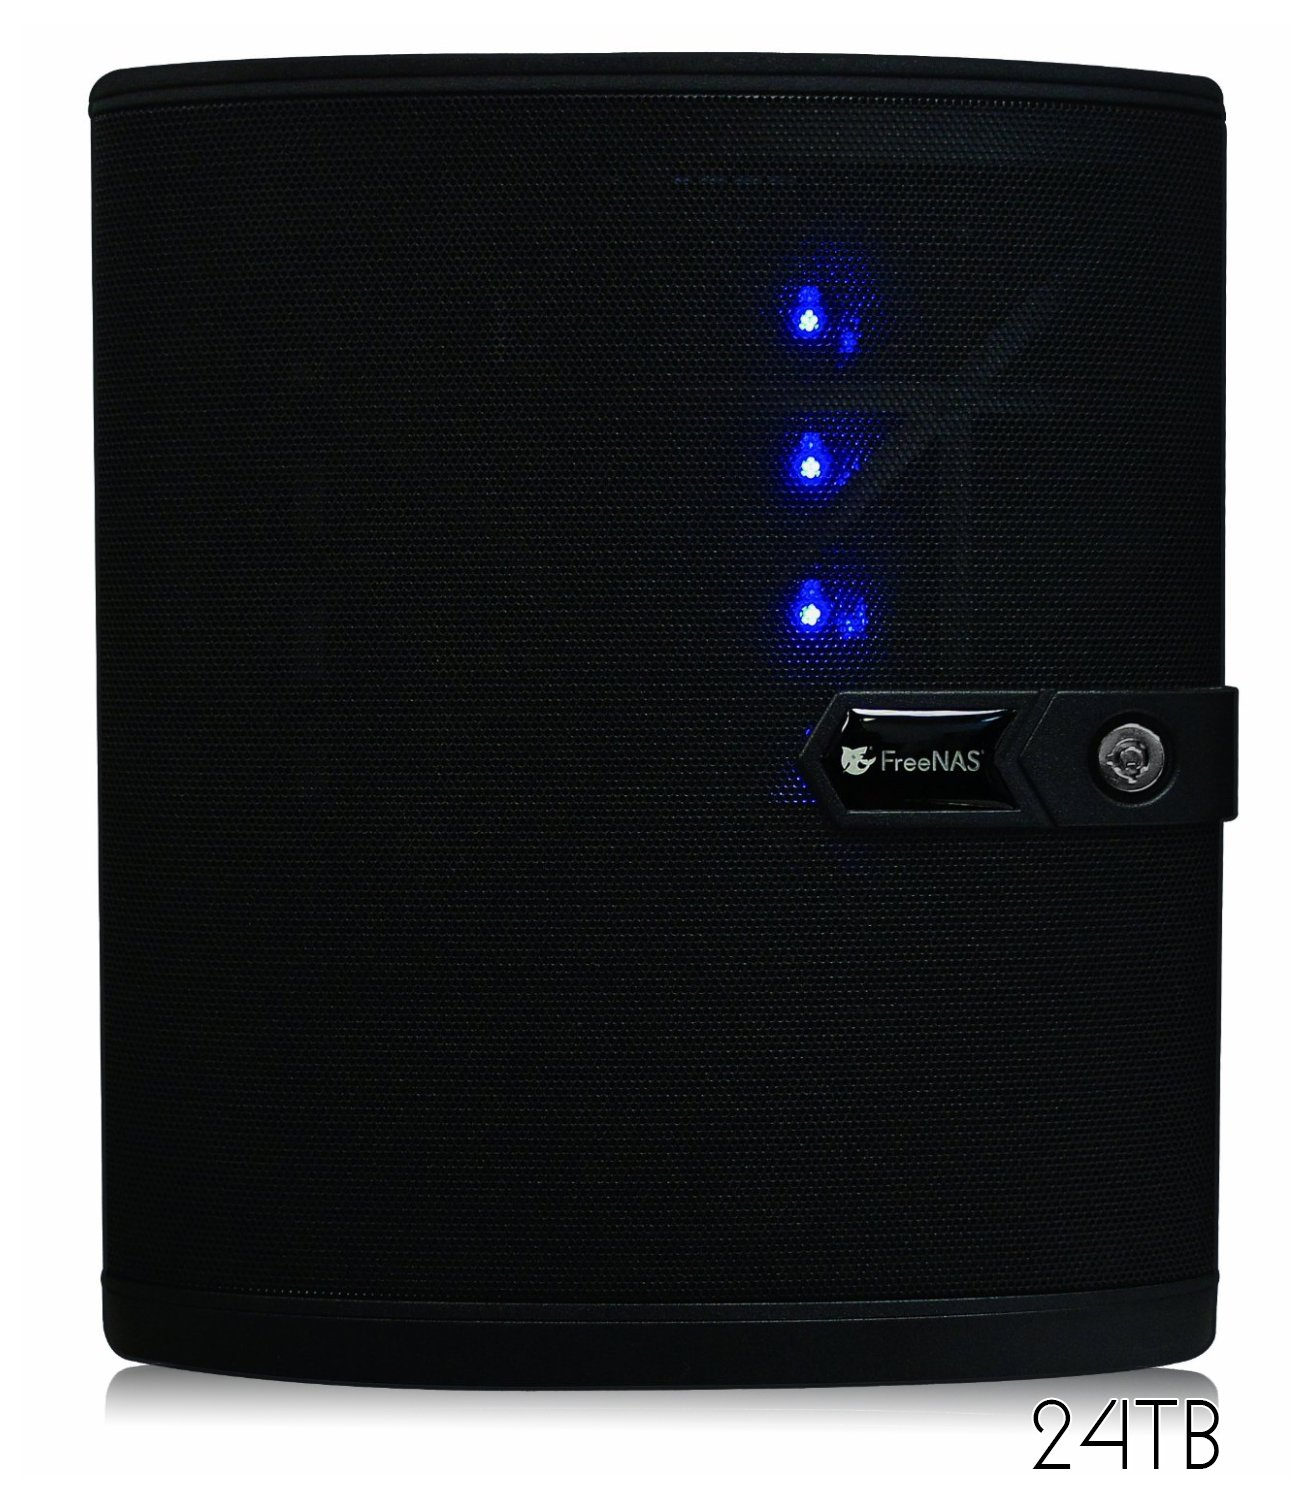 FreeNAS Mini - Network Attached Storage (24TB)